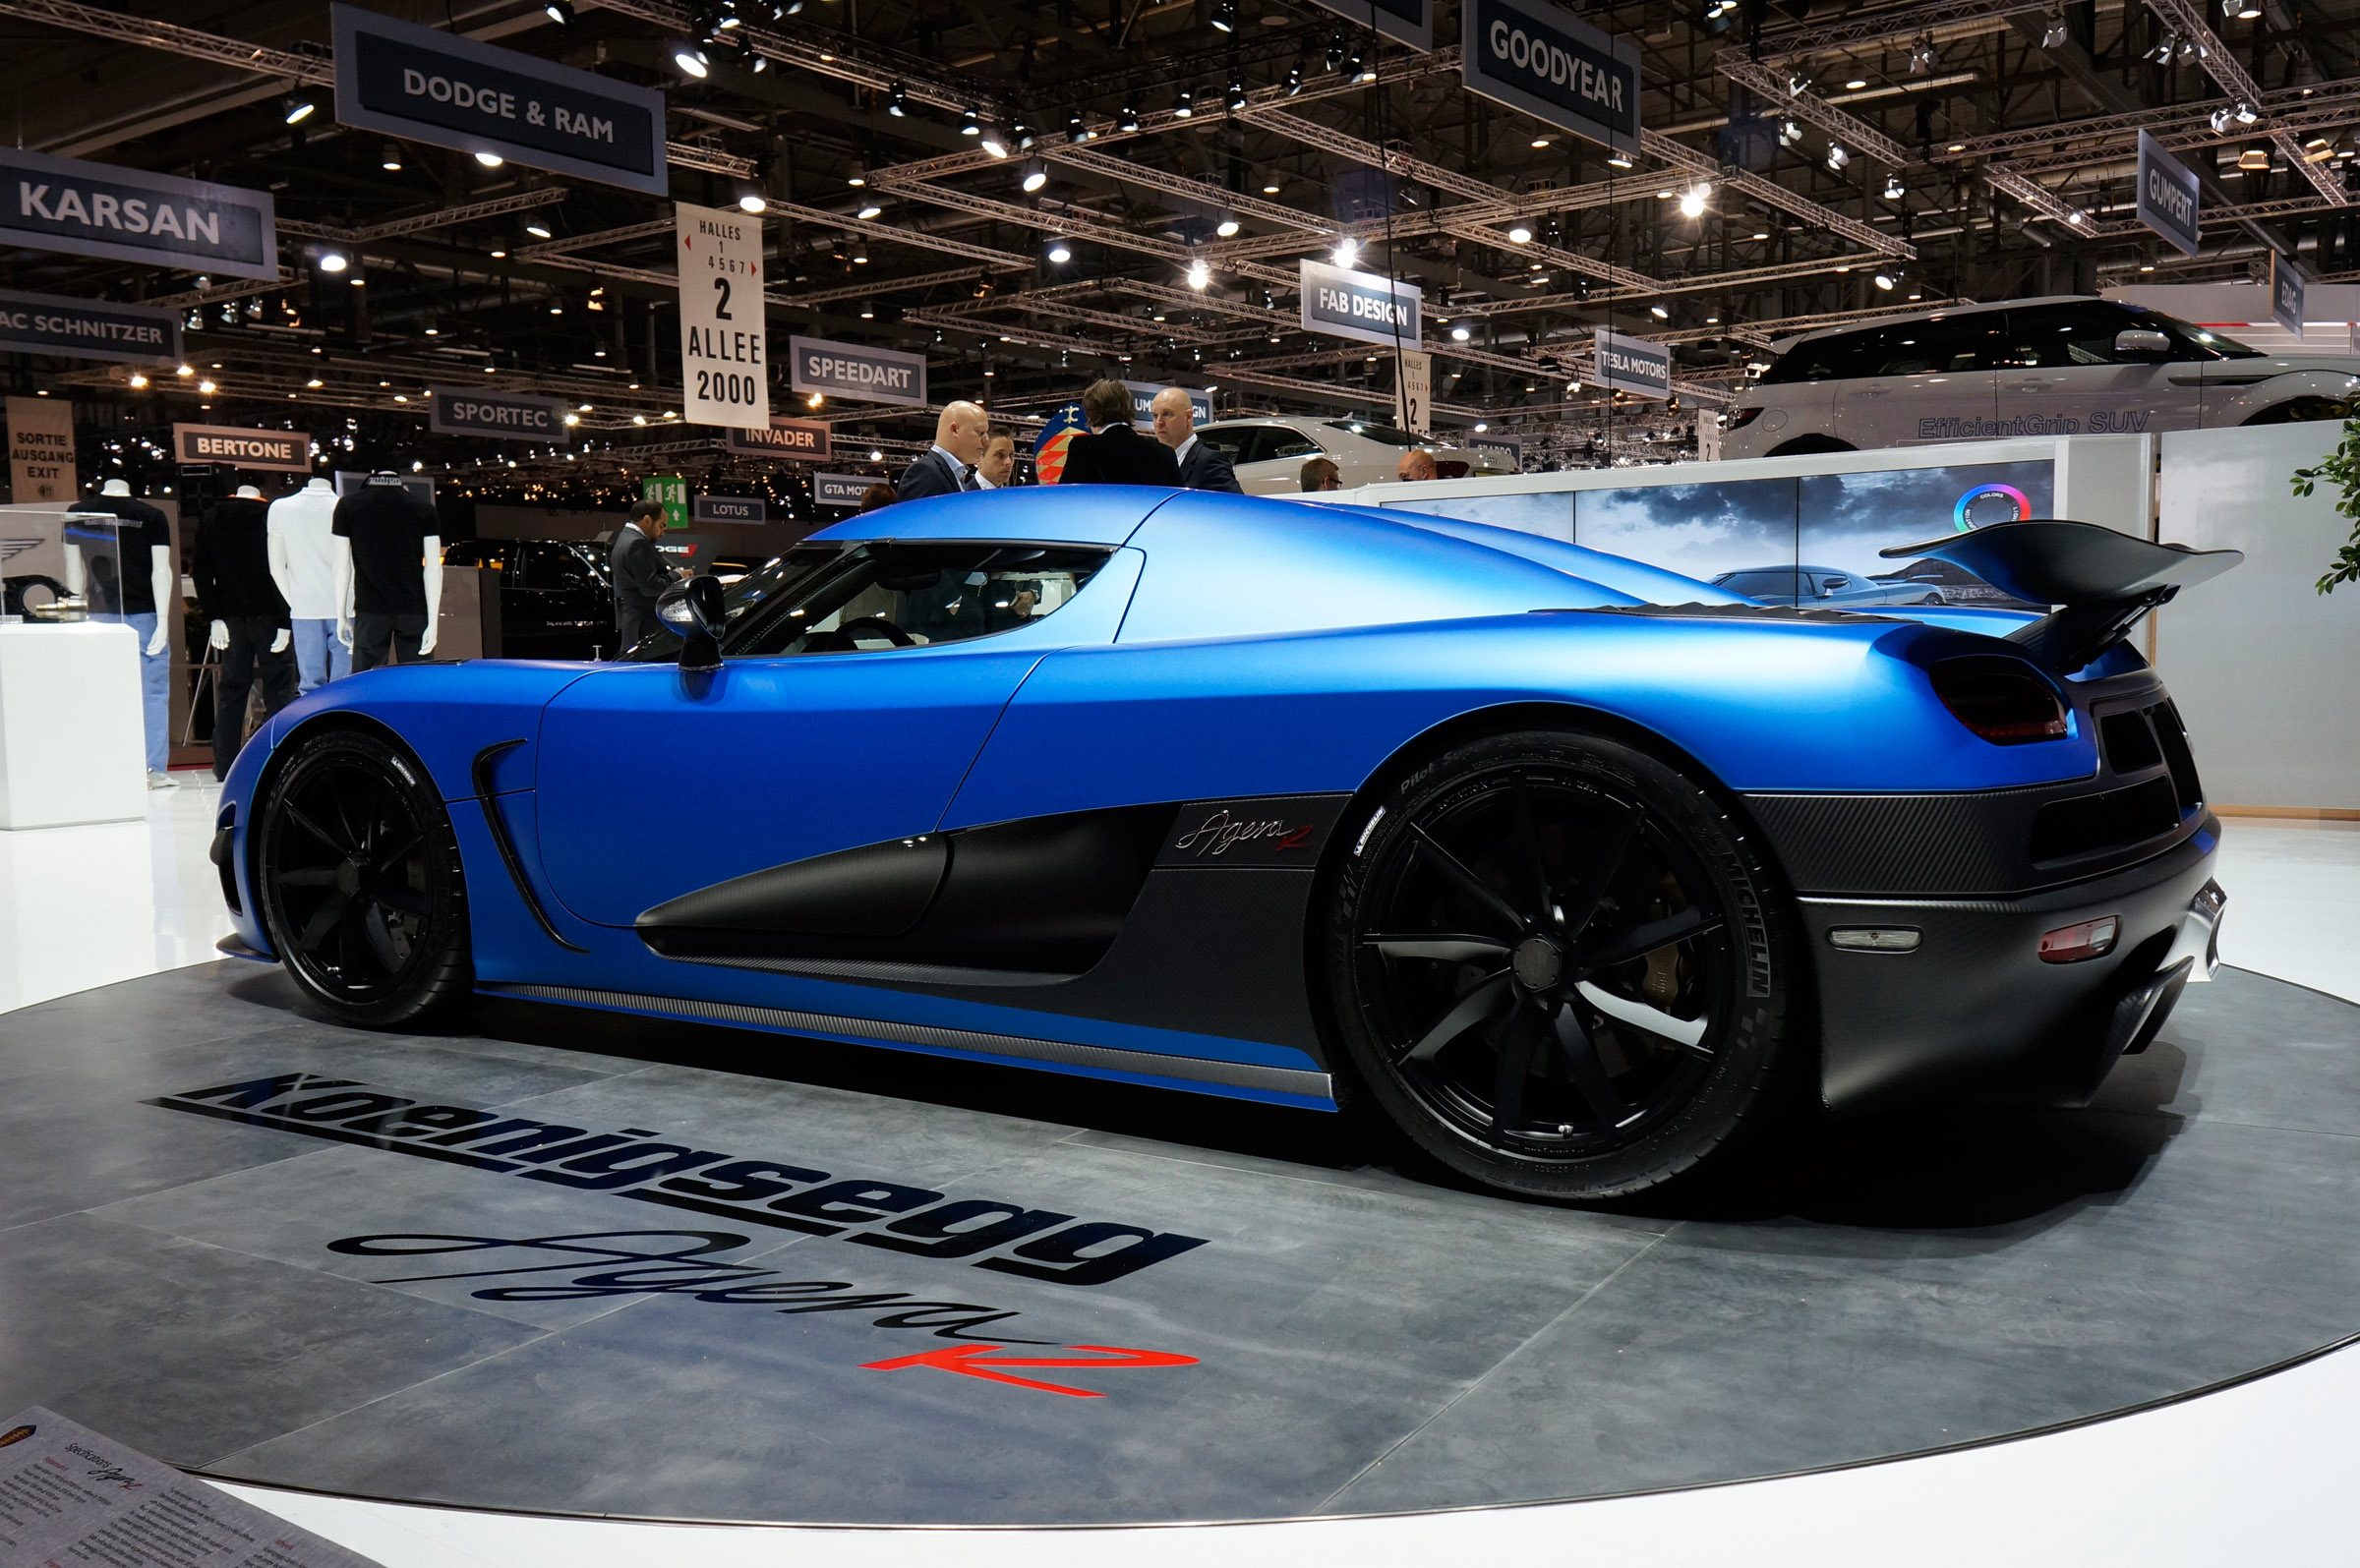 Specialized Wallpaper Hd Koenigsegg Agera R Geneva 2012 Picture 65916